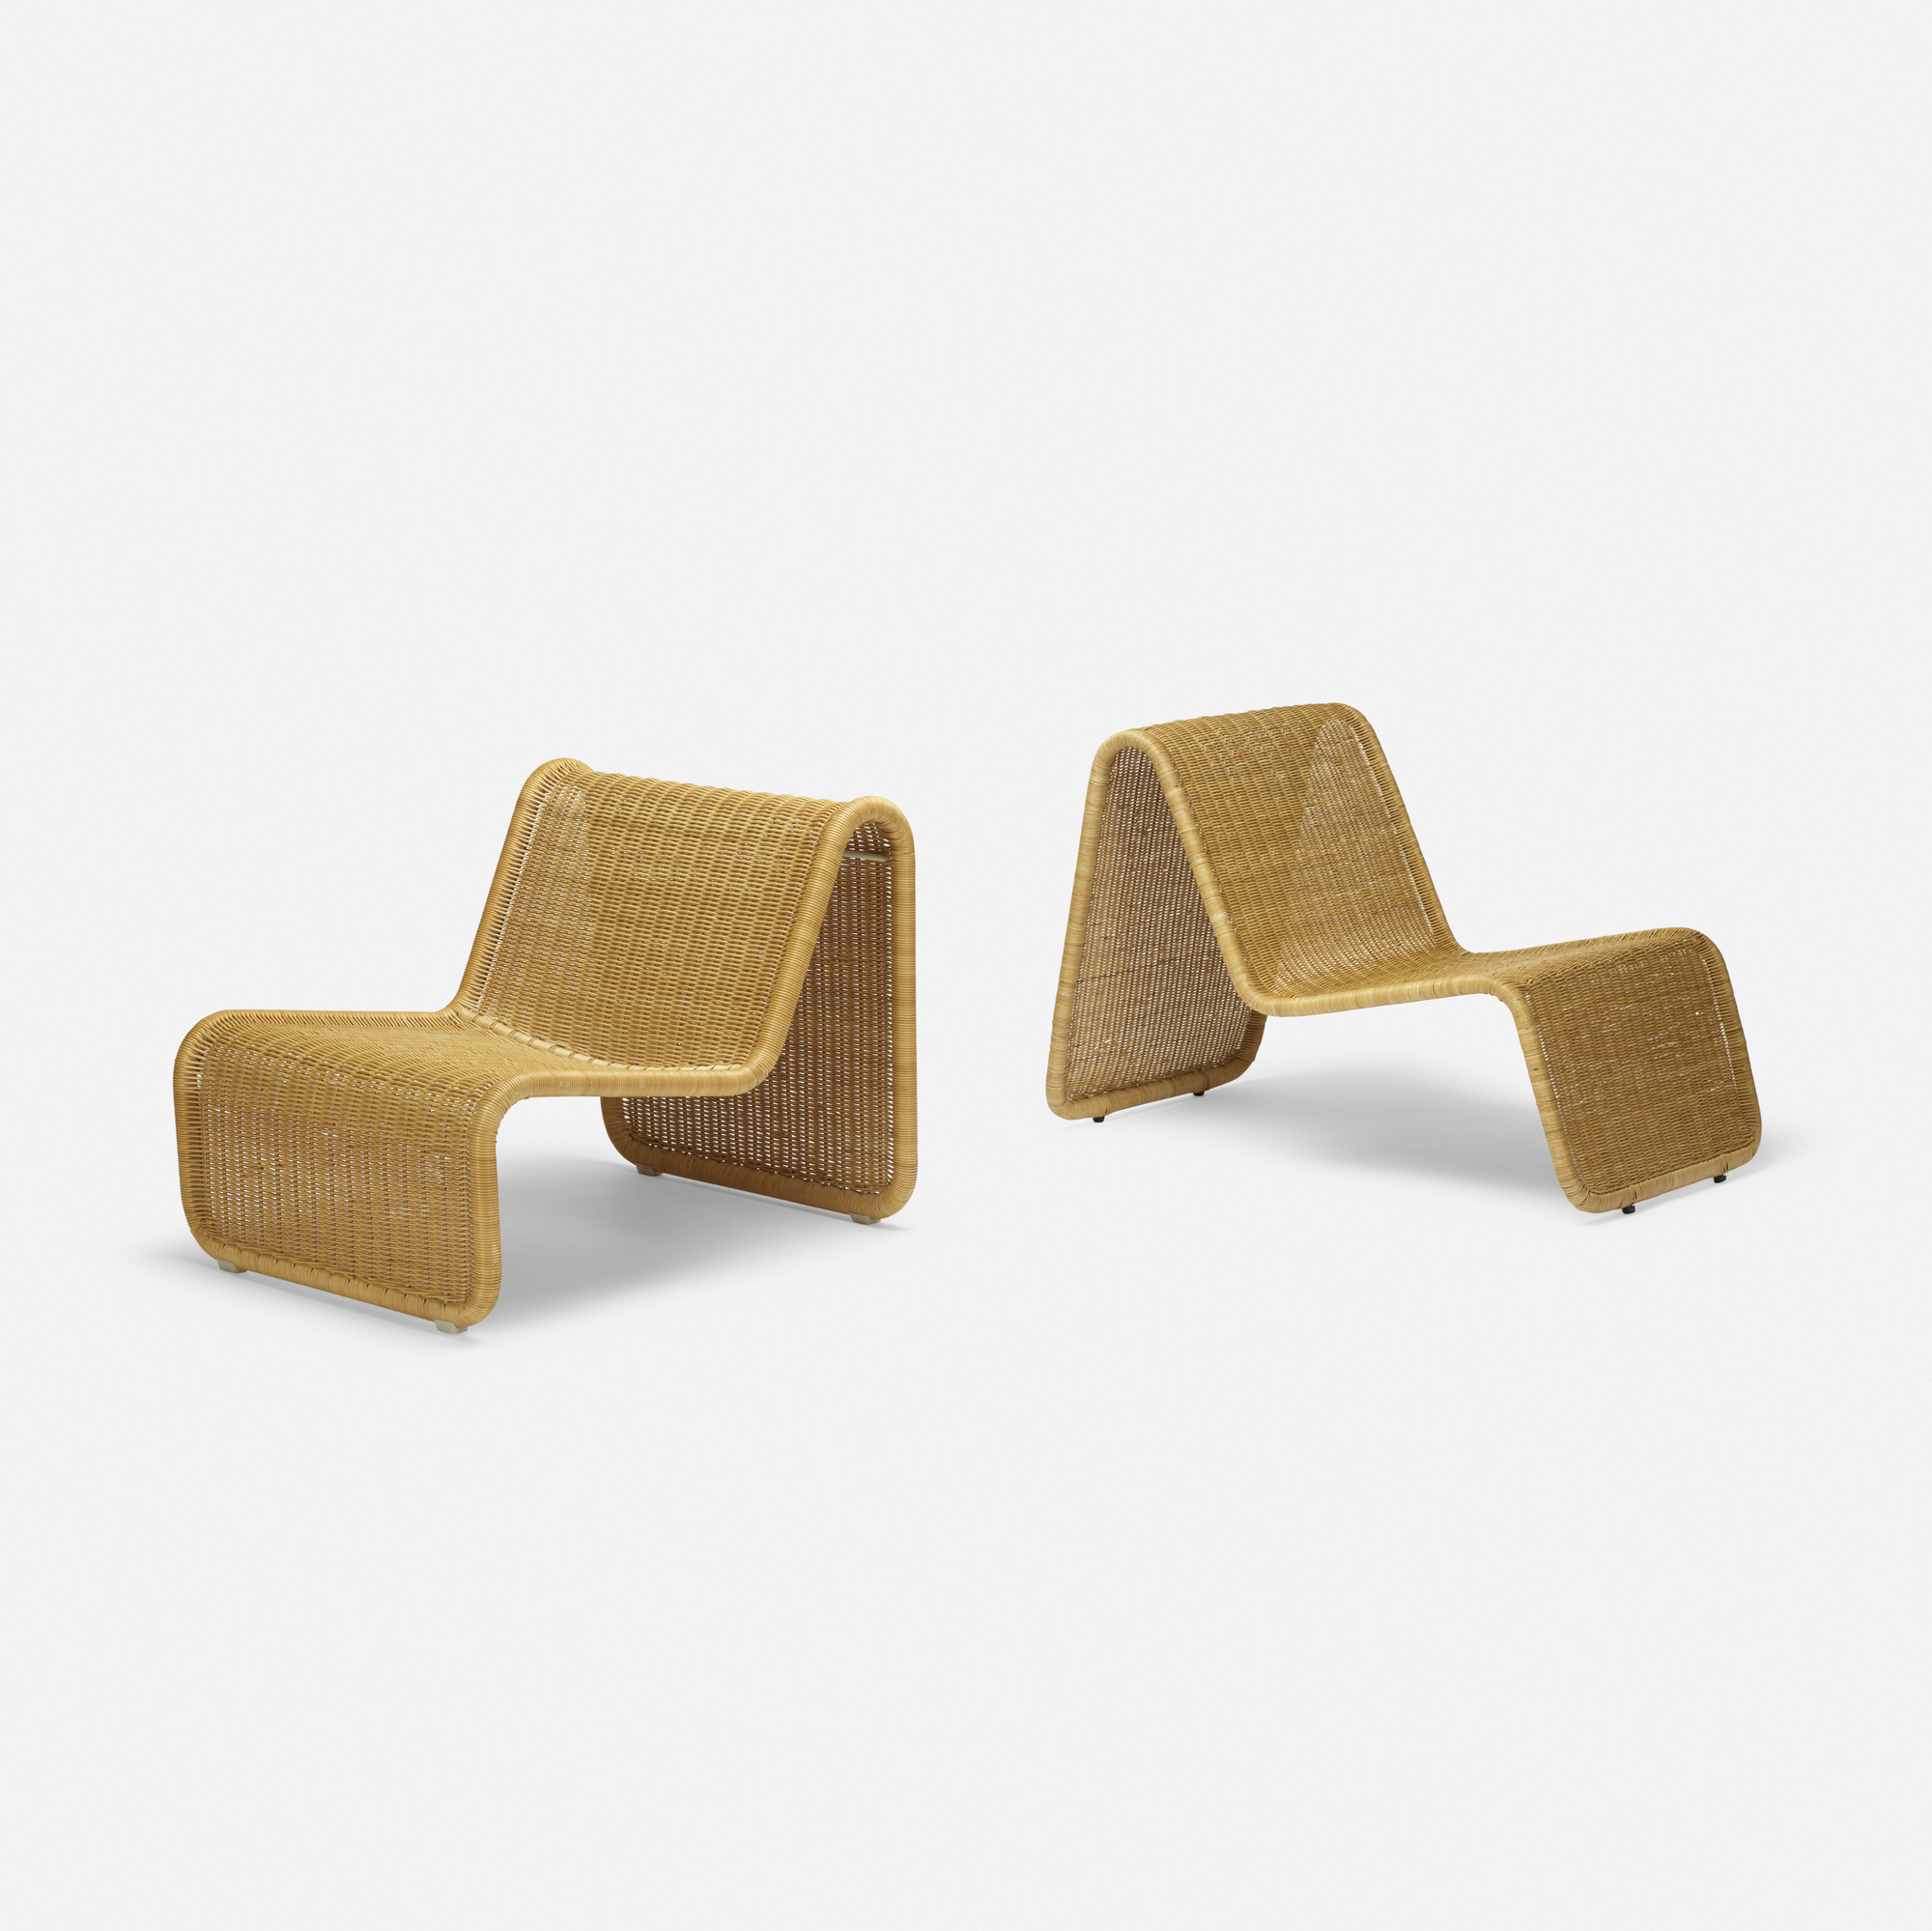 125: Tito Agnoli / P3 lounge chairs, set of two (1 of 2)